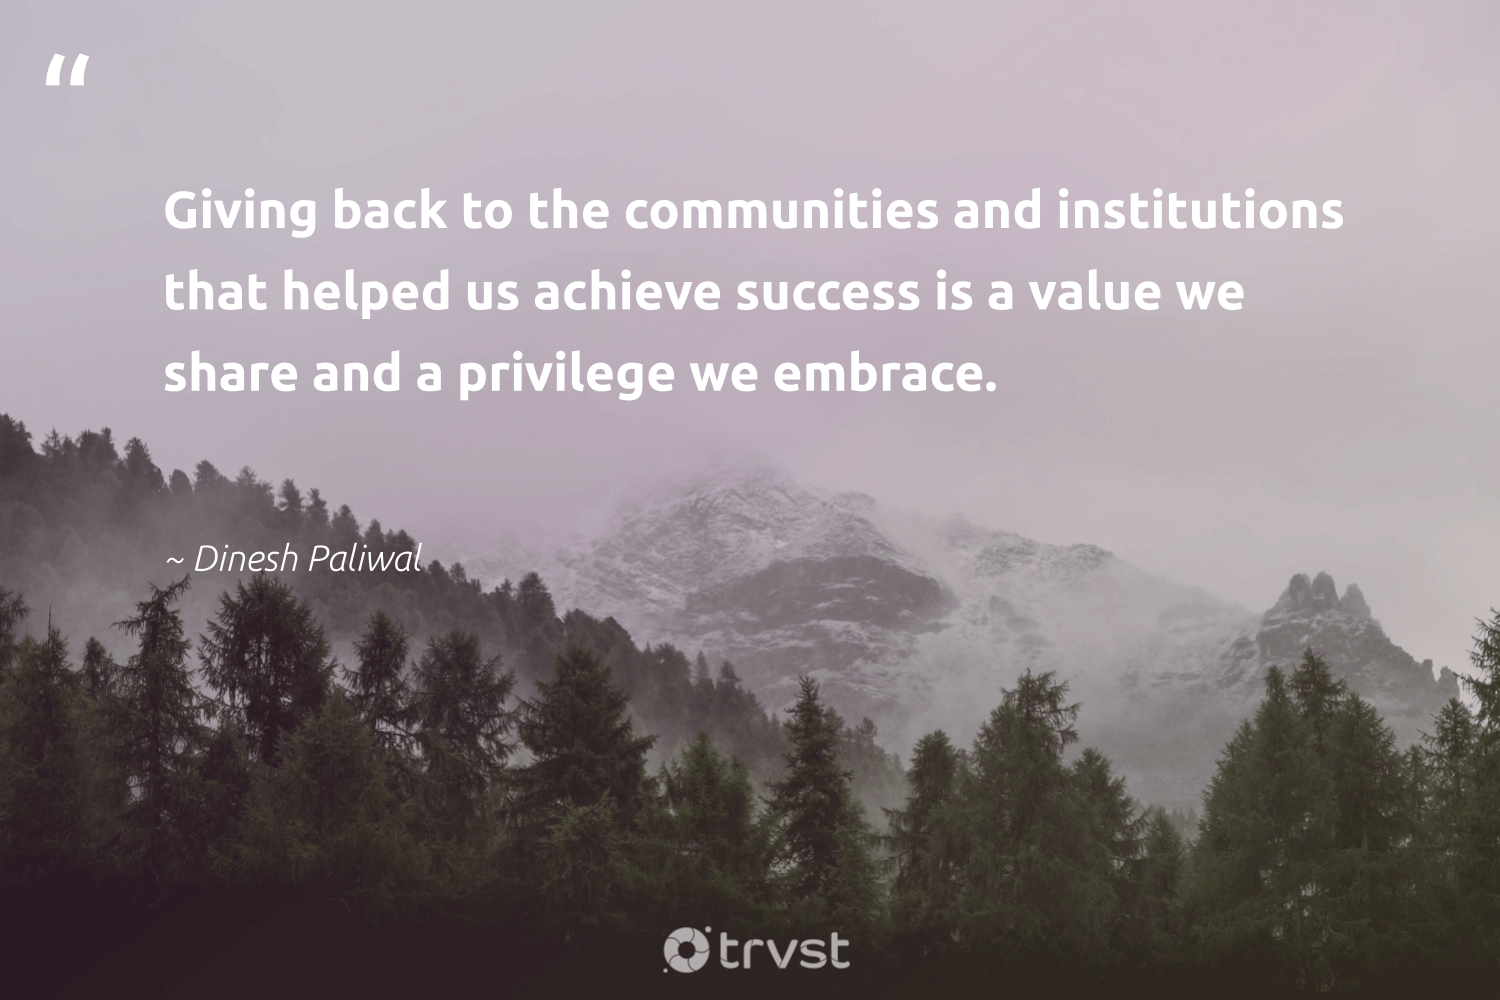 """""""Giving back to the communities and institutions that helped us achieve success is a value we share and a privilege we embrace.""""  - Dinesh Paliwal #trvst #quotes #givingback #communities #success #giveback #goals #changemakers #togetherwecan #socialimpact #dogood #motivational"""